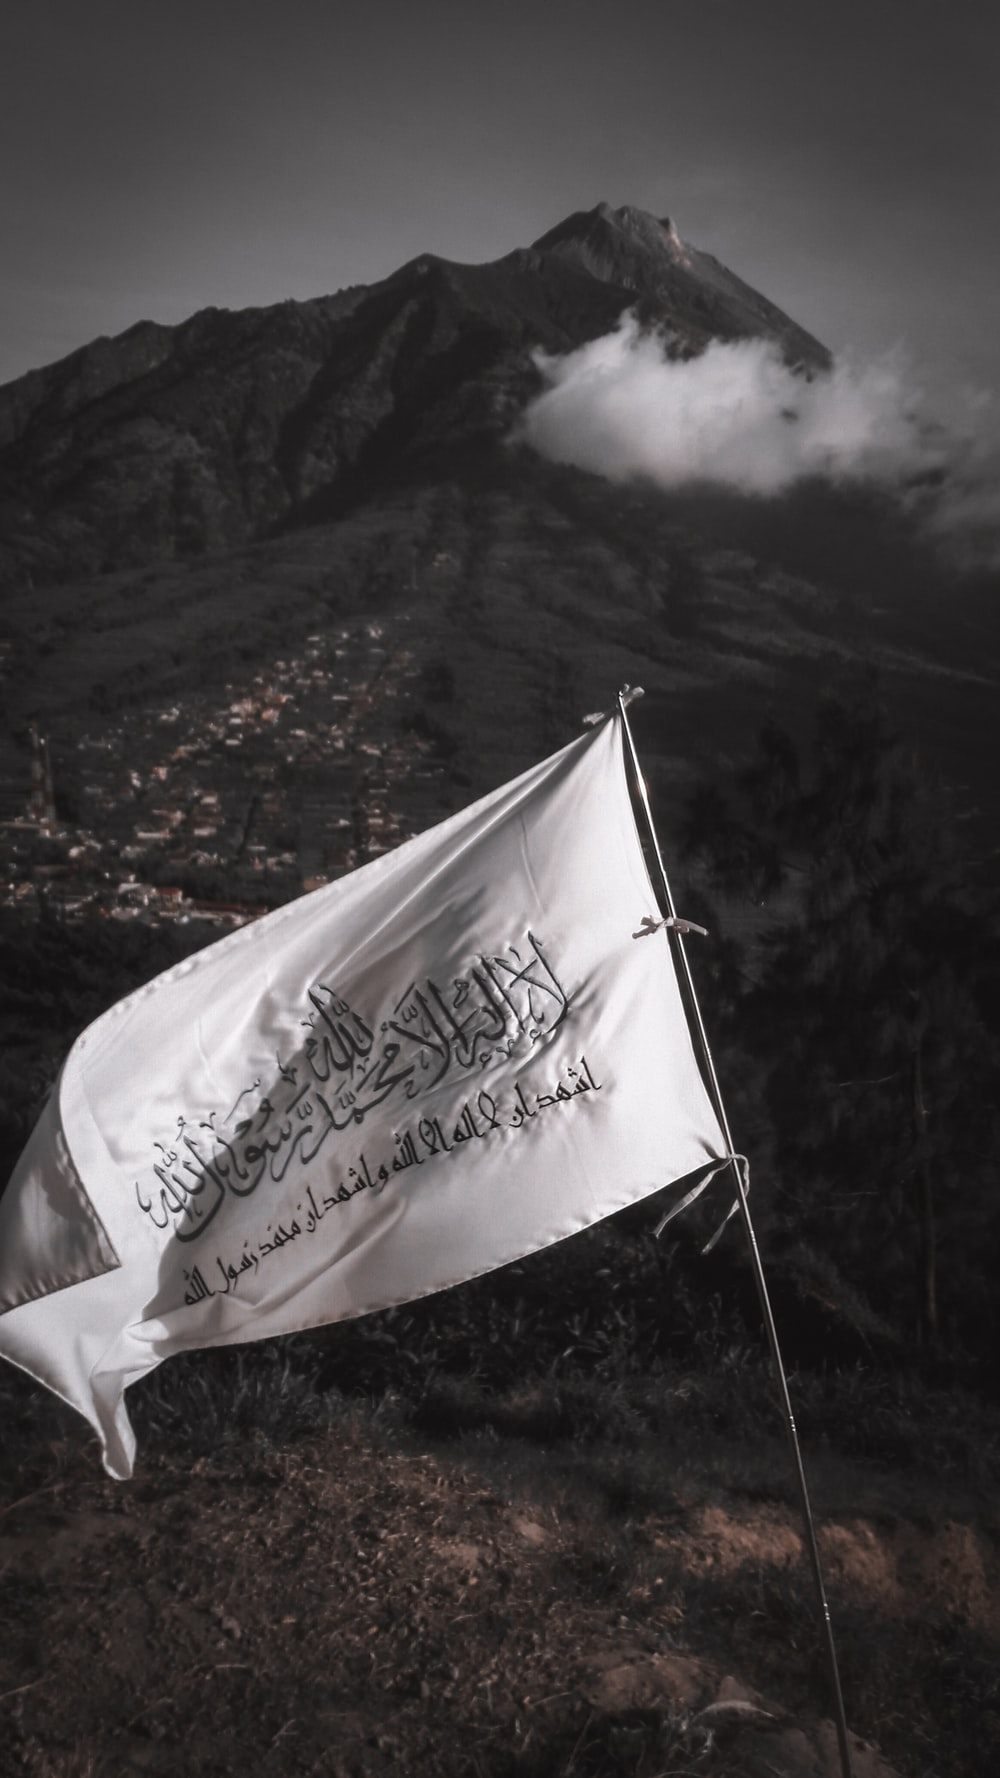 white and blue flag on mountain during daytime